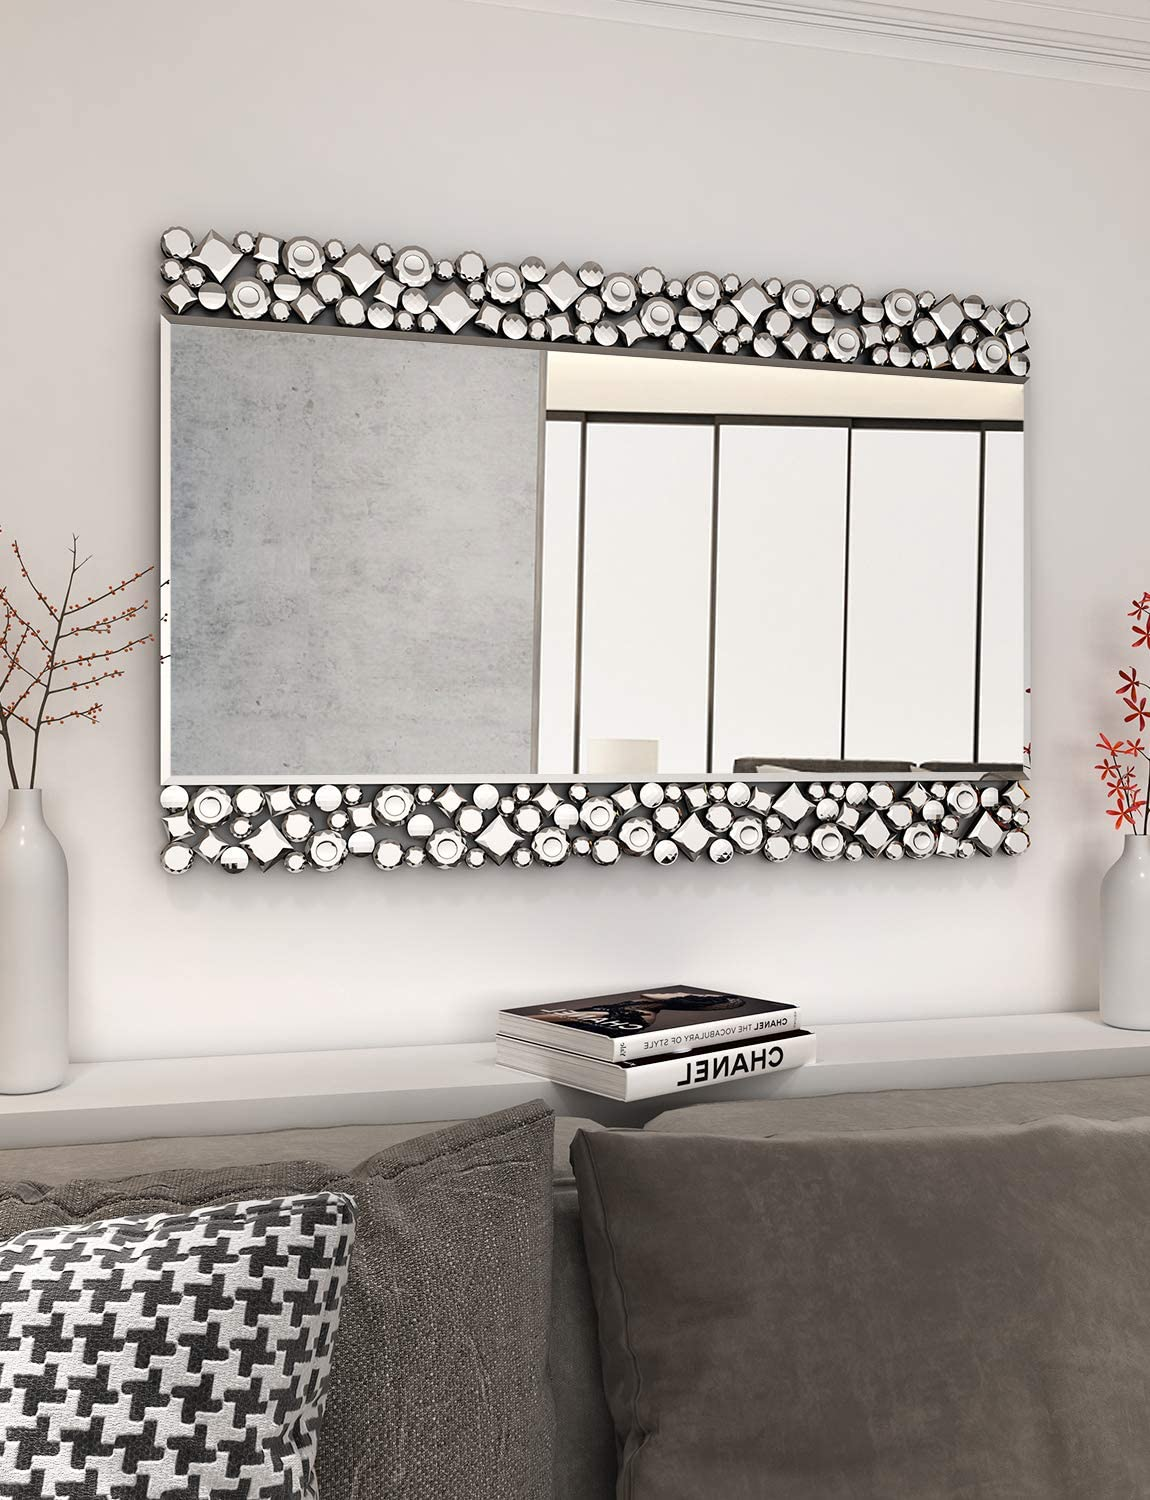 Gorgeous Wall Mirrors for Decor - 23.6'' X 35.4'' Rectangle Wall Mirror for Decor Fireplace Bedroom Livingroom